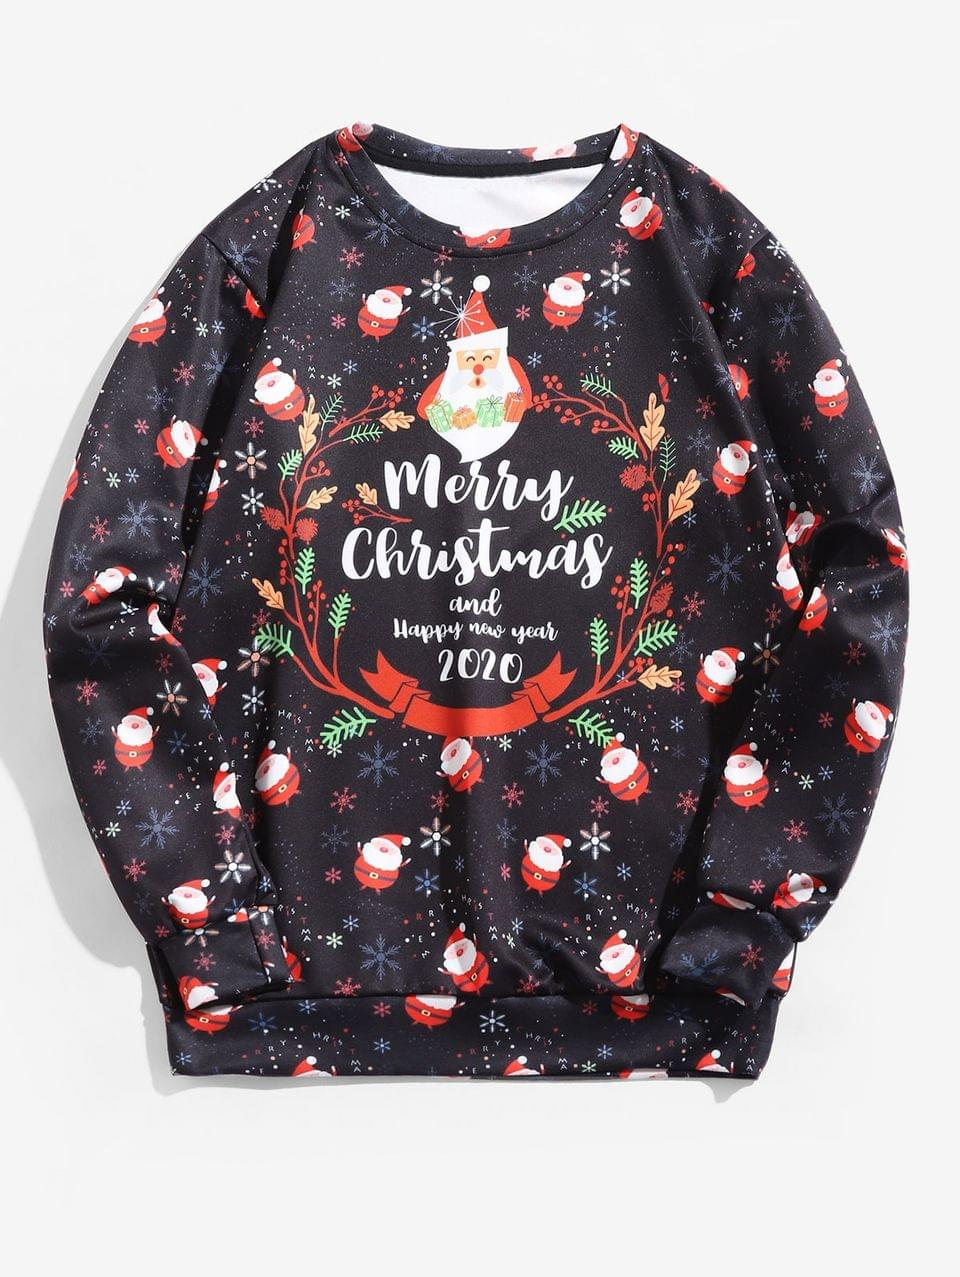 Men's Santas Snowflakes Letter Graphic Christmas Sweatshirt - Multi 3xl